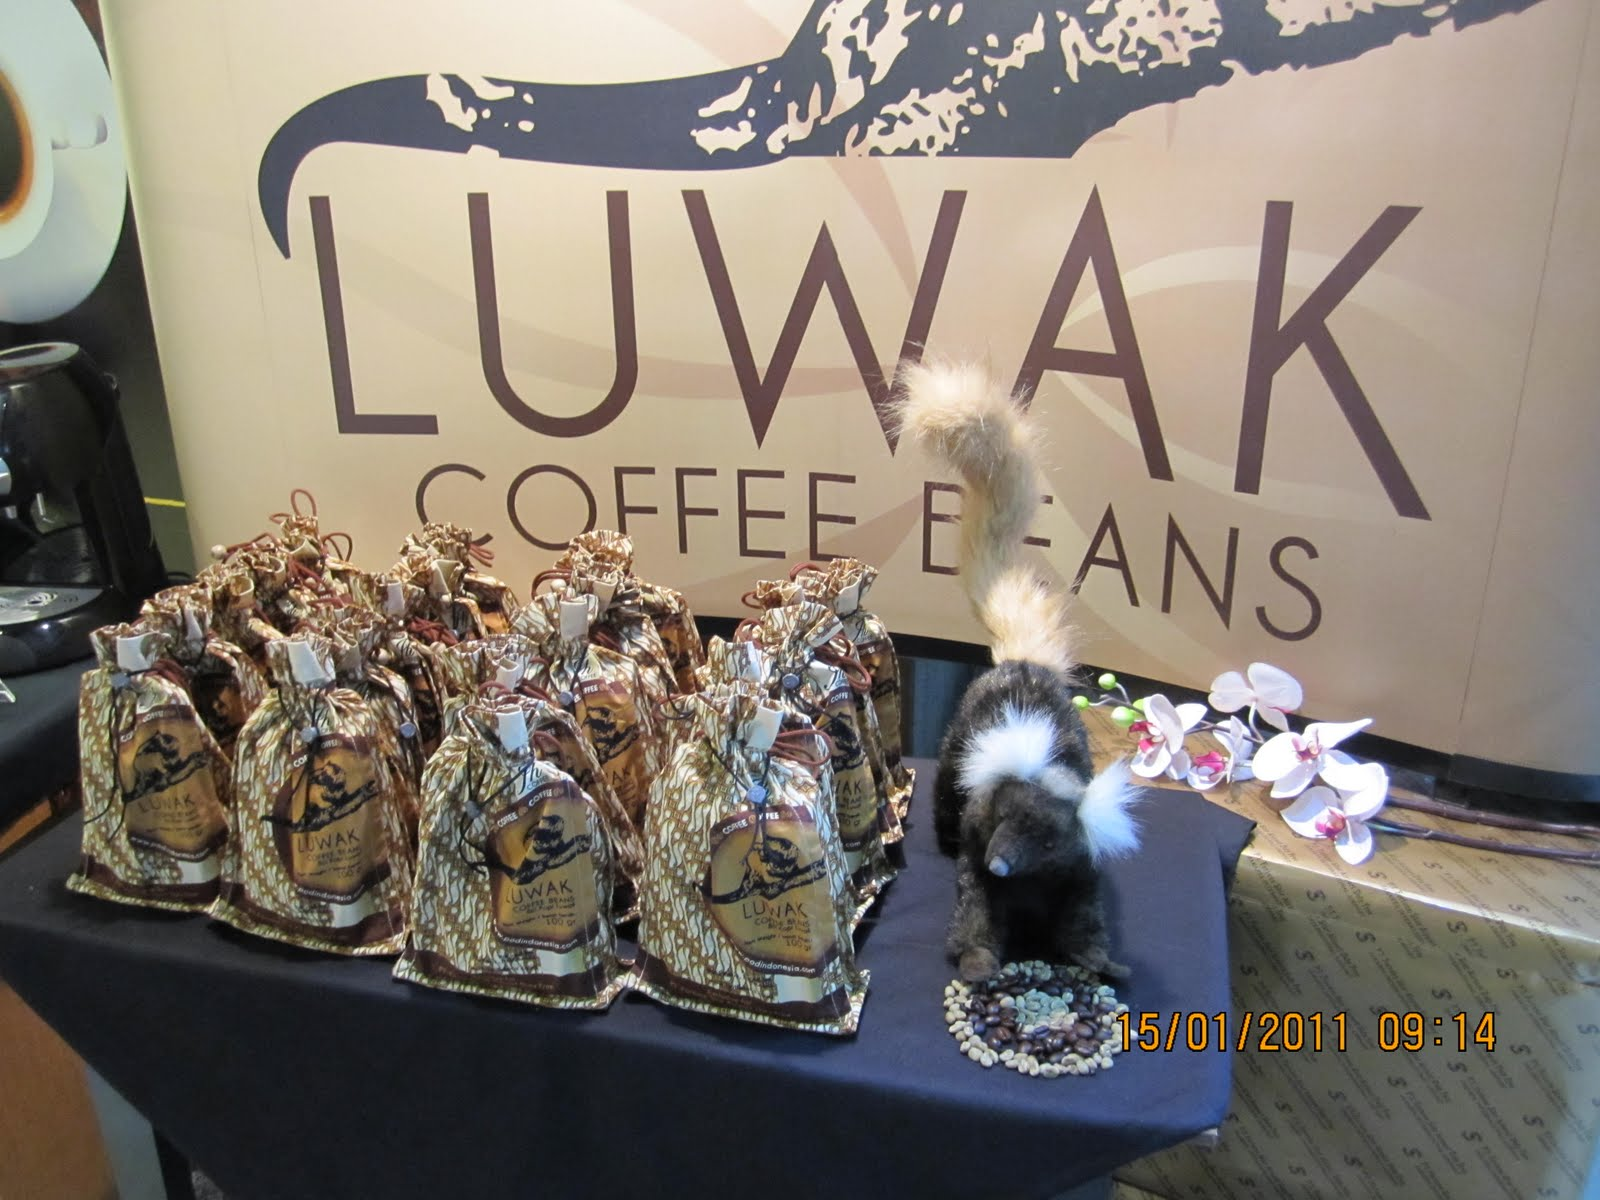 an essay on luwak coffee Learn about the fascinating world of indonesian coffee, from kopi luwak to kopi tubruk coffee shops and coffee plantation and coffee imports/exports all have a fascinating story to tell in.